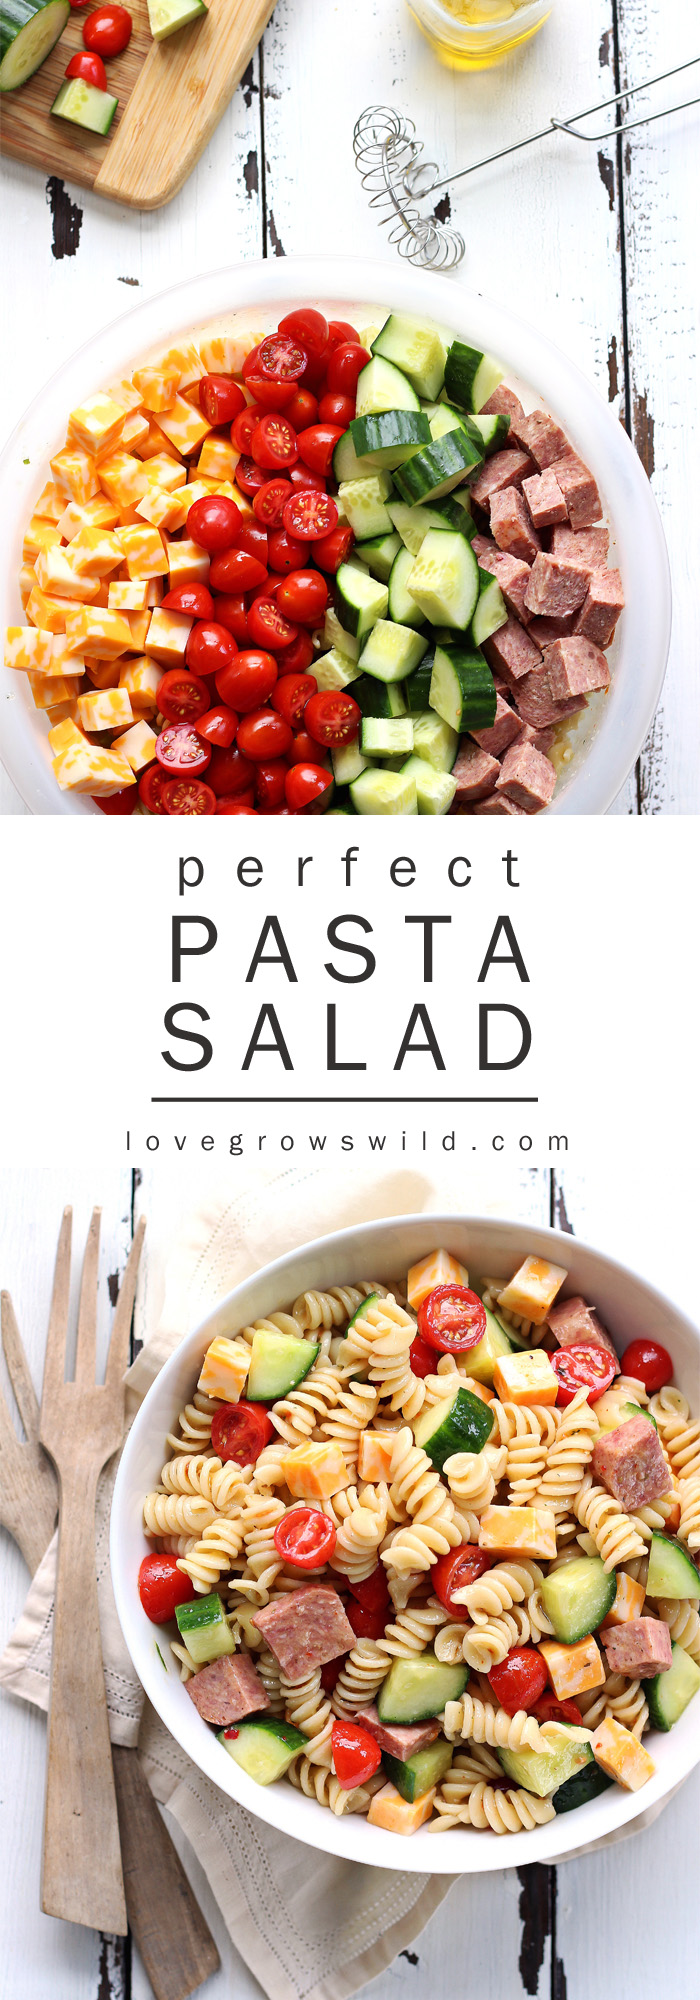 The perfect pasta salad recipe! Tender noodles tossed in a zesty Italian dressing with vegetables, meat, and cheese... great for a potluck or a light meal! | LoveGrowsWild.com